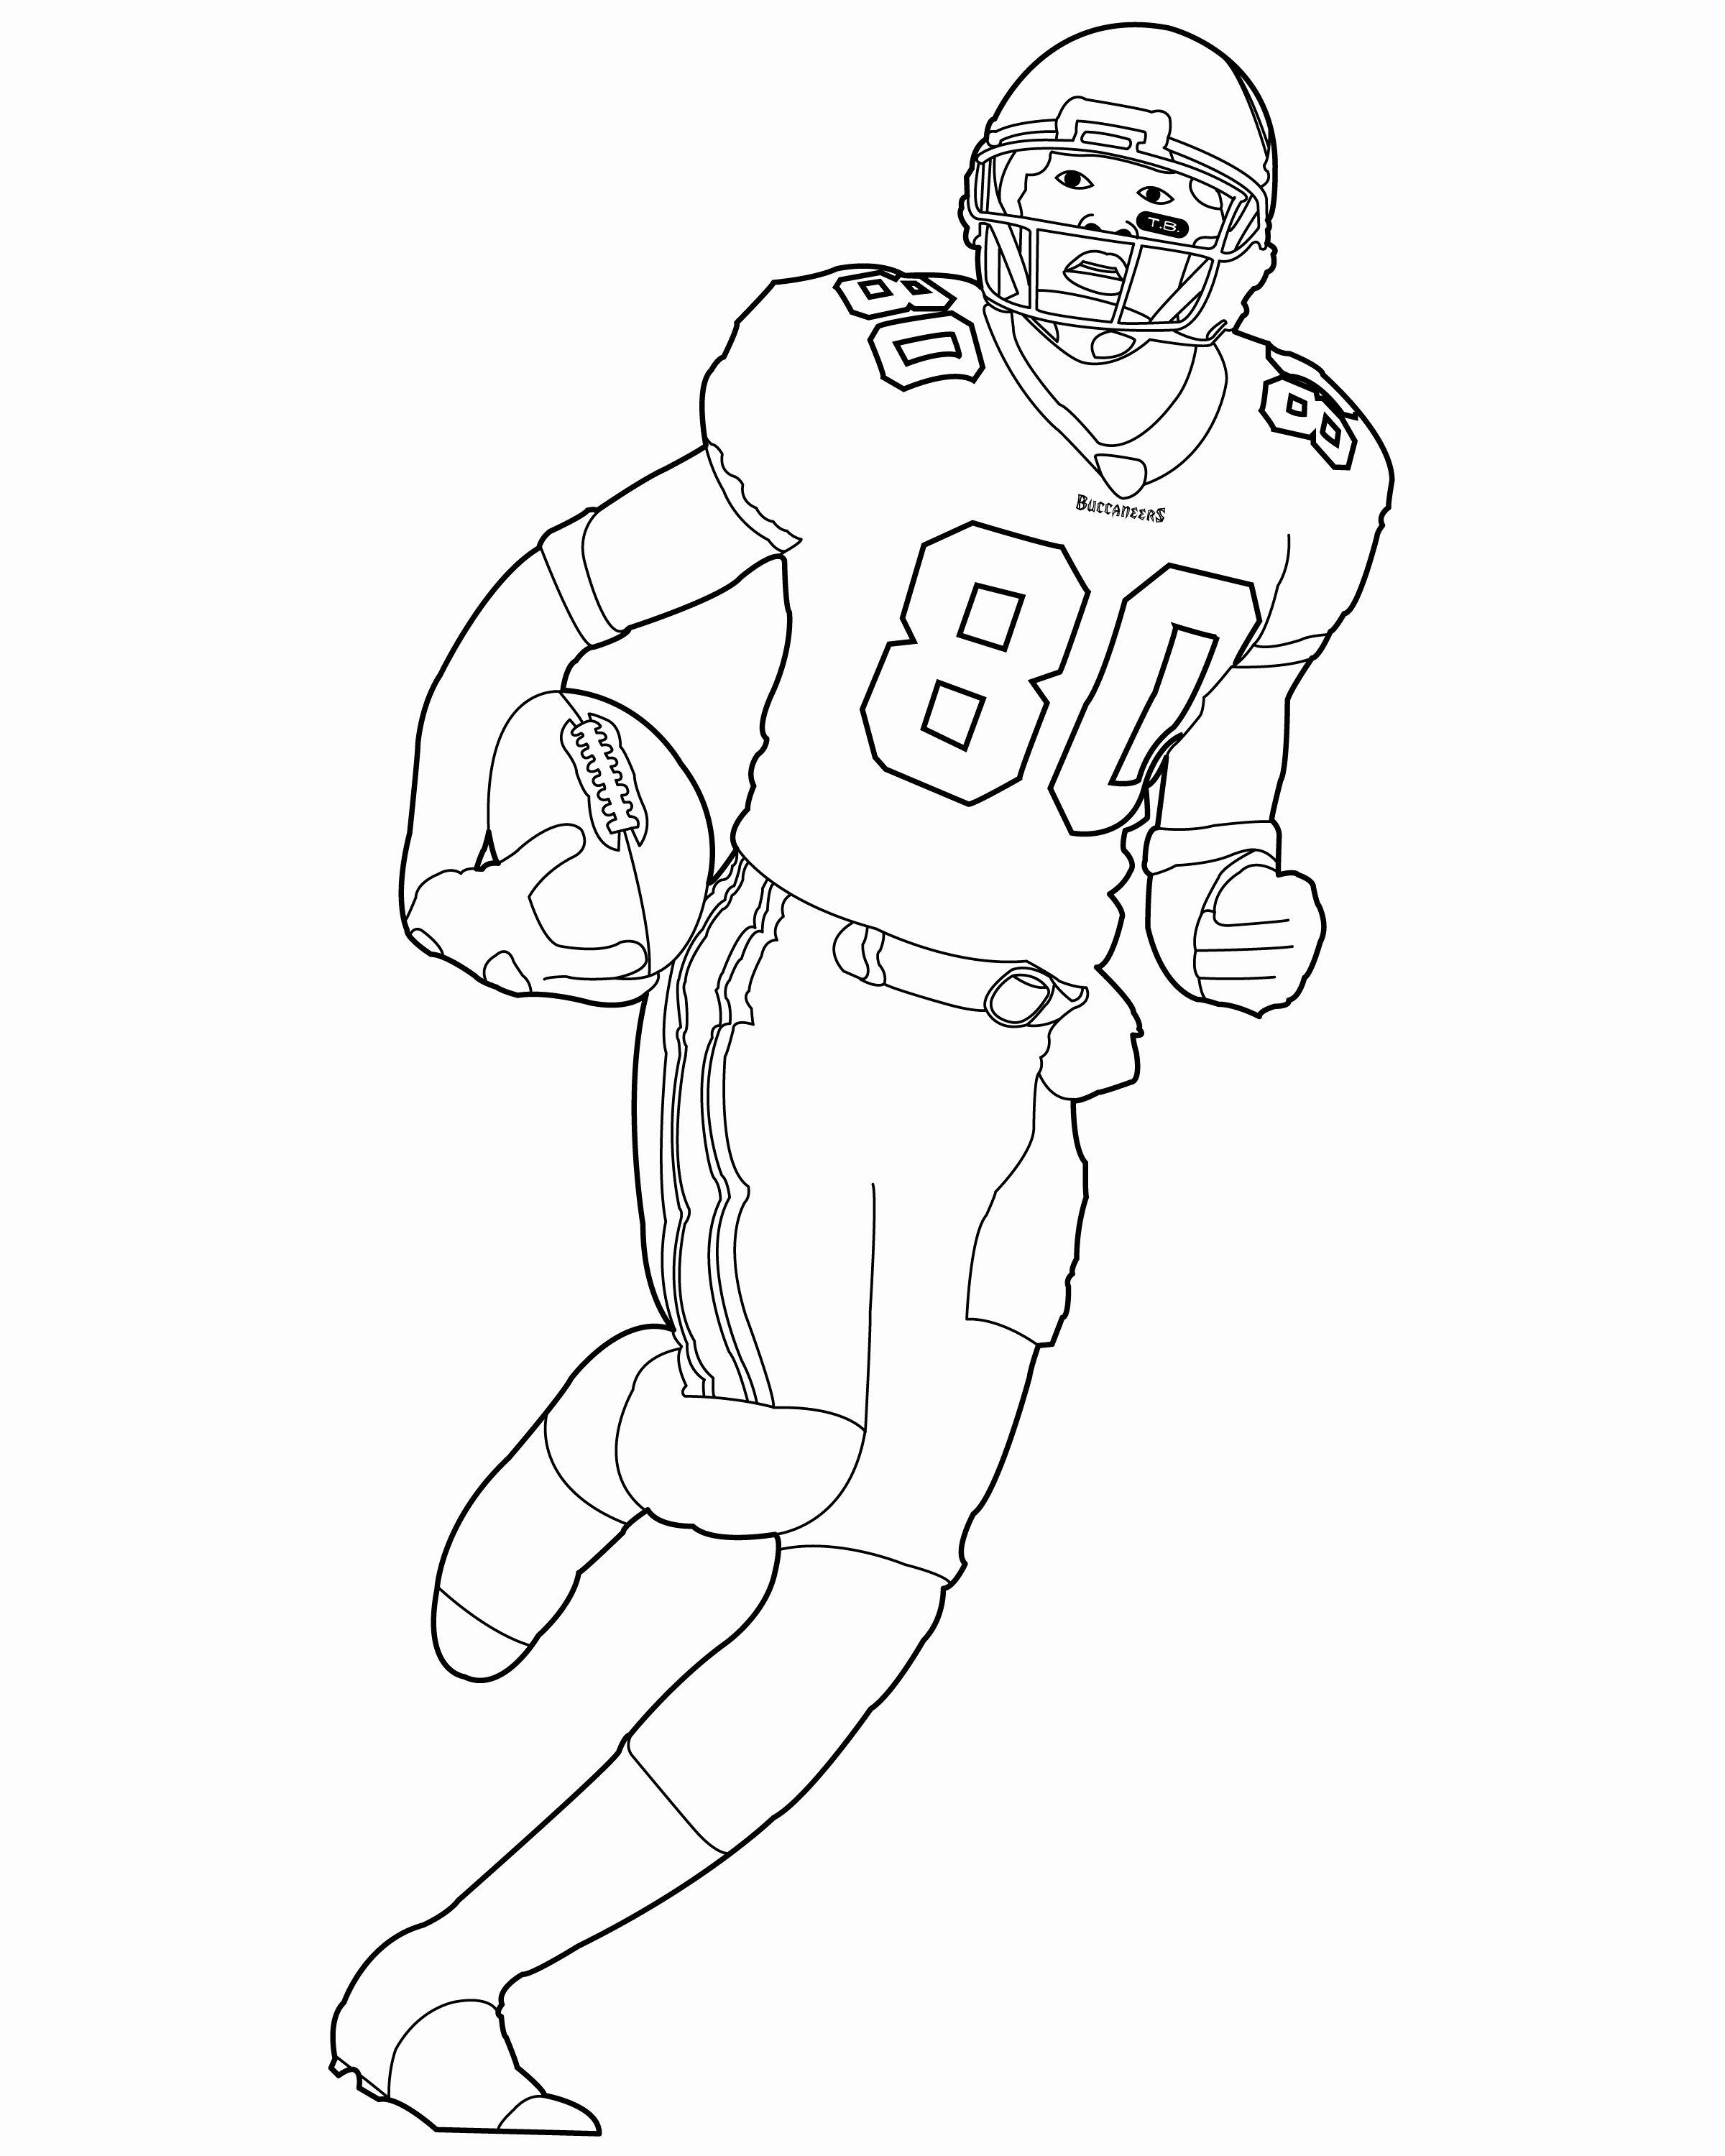 Sports Jersey Coloring Page Awesome Football Player Coloring Page